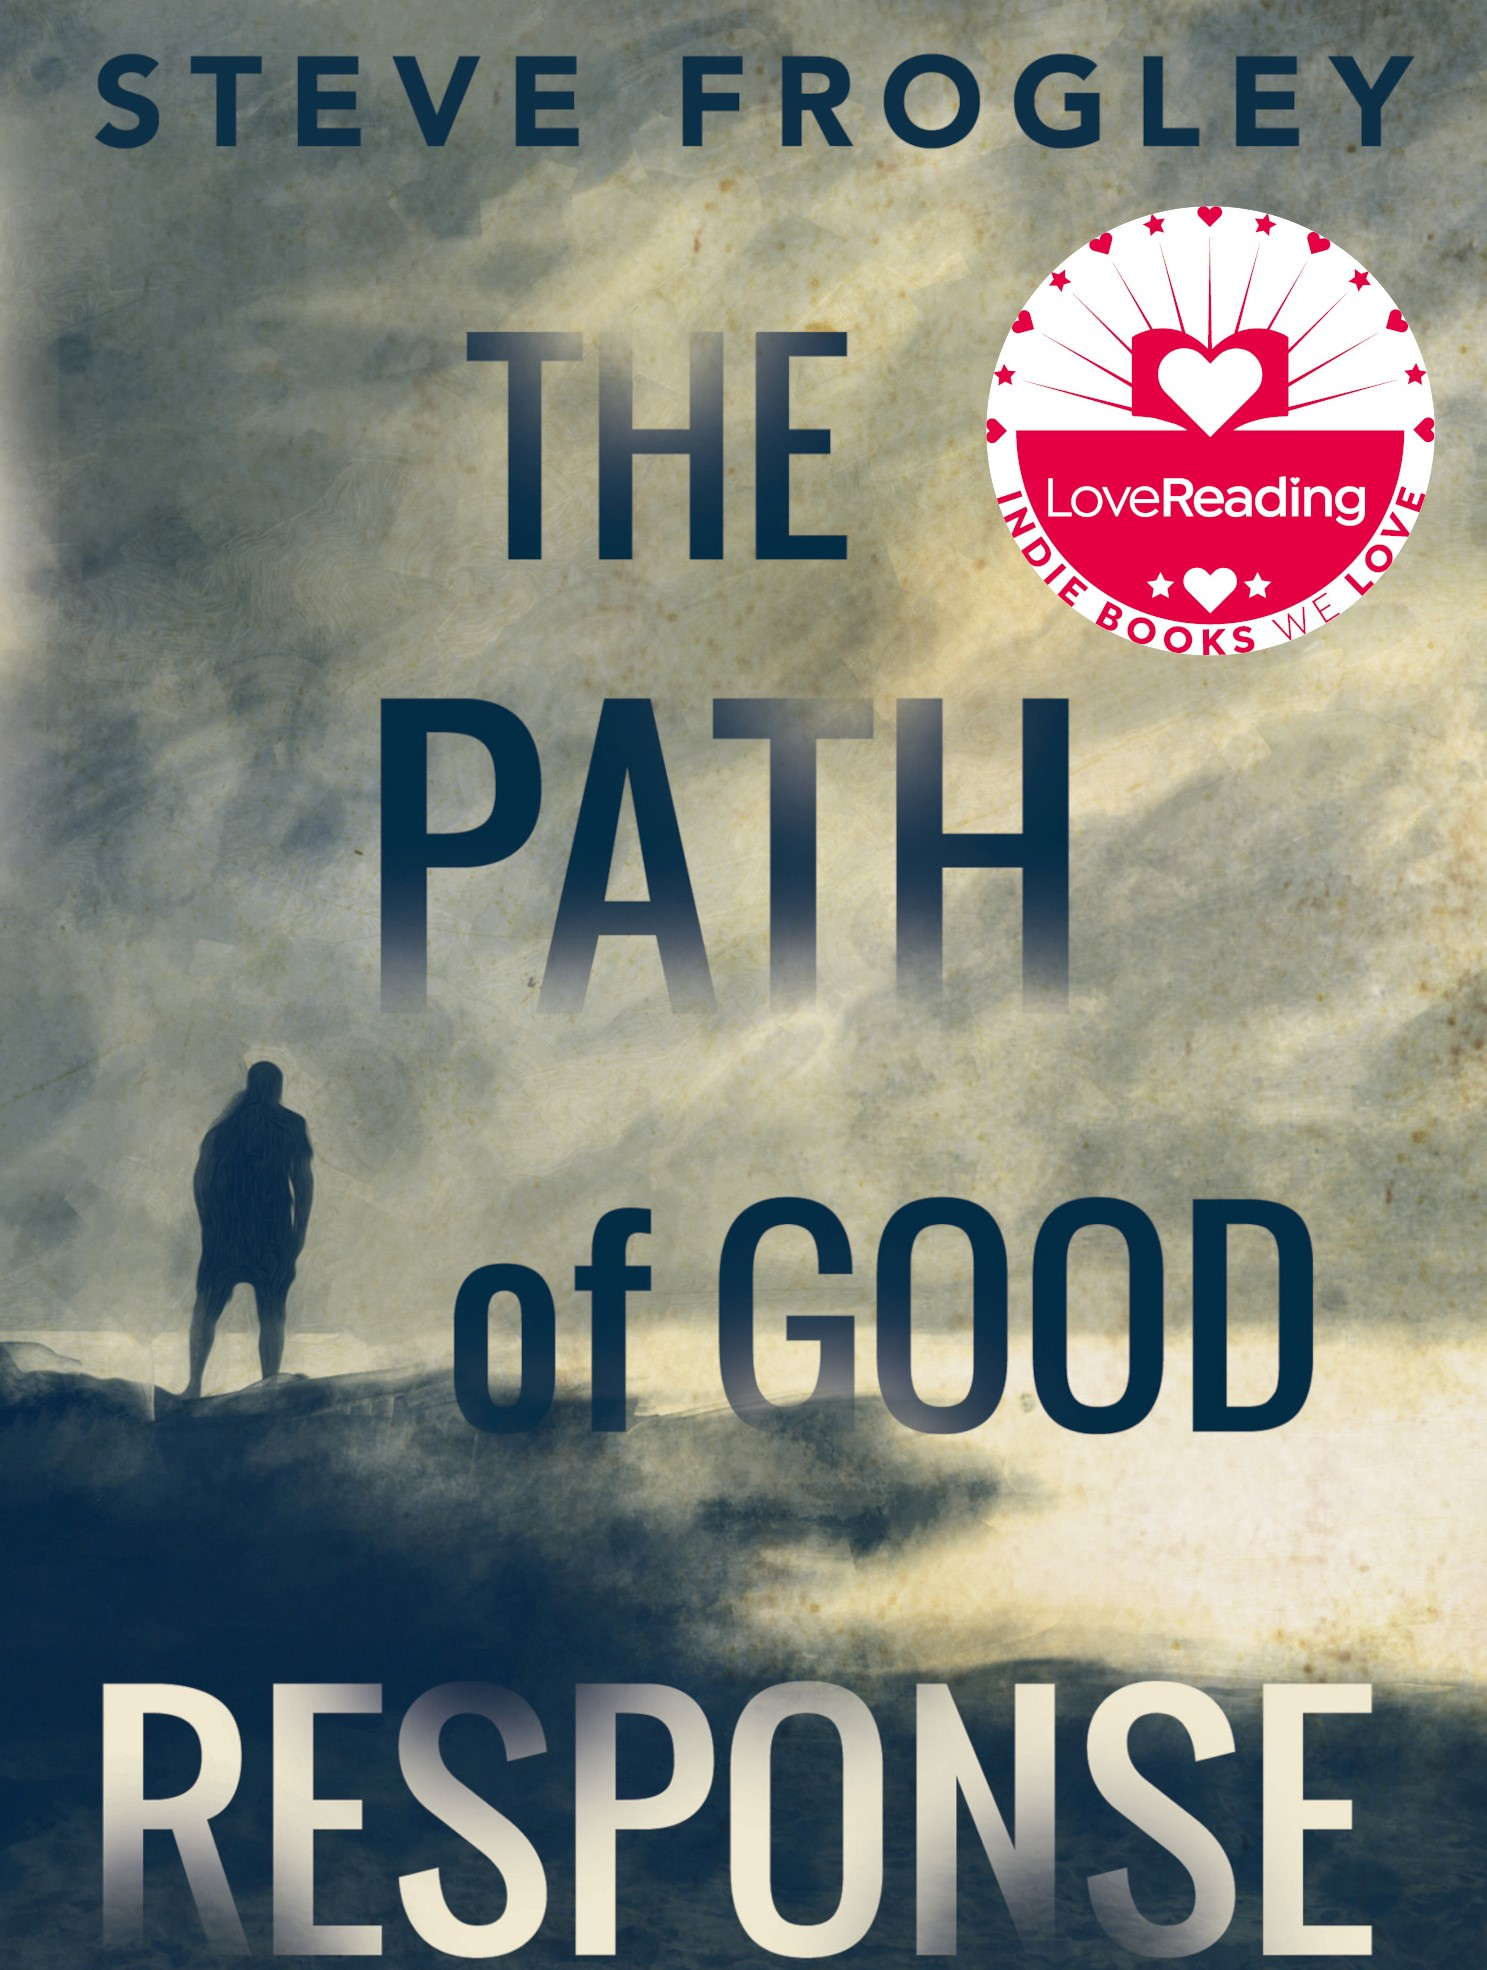 'The Path of Good Response' by Steve Frogley